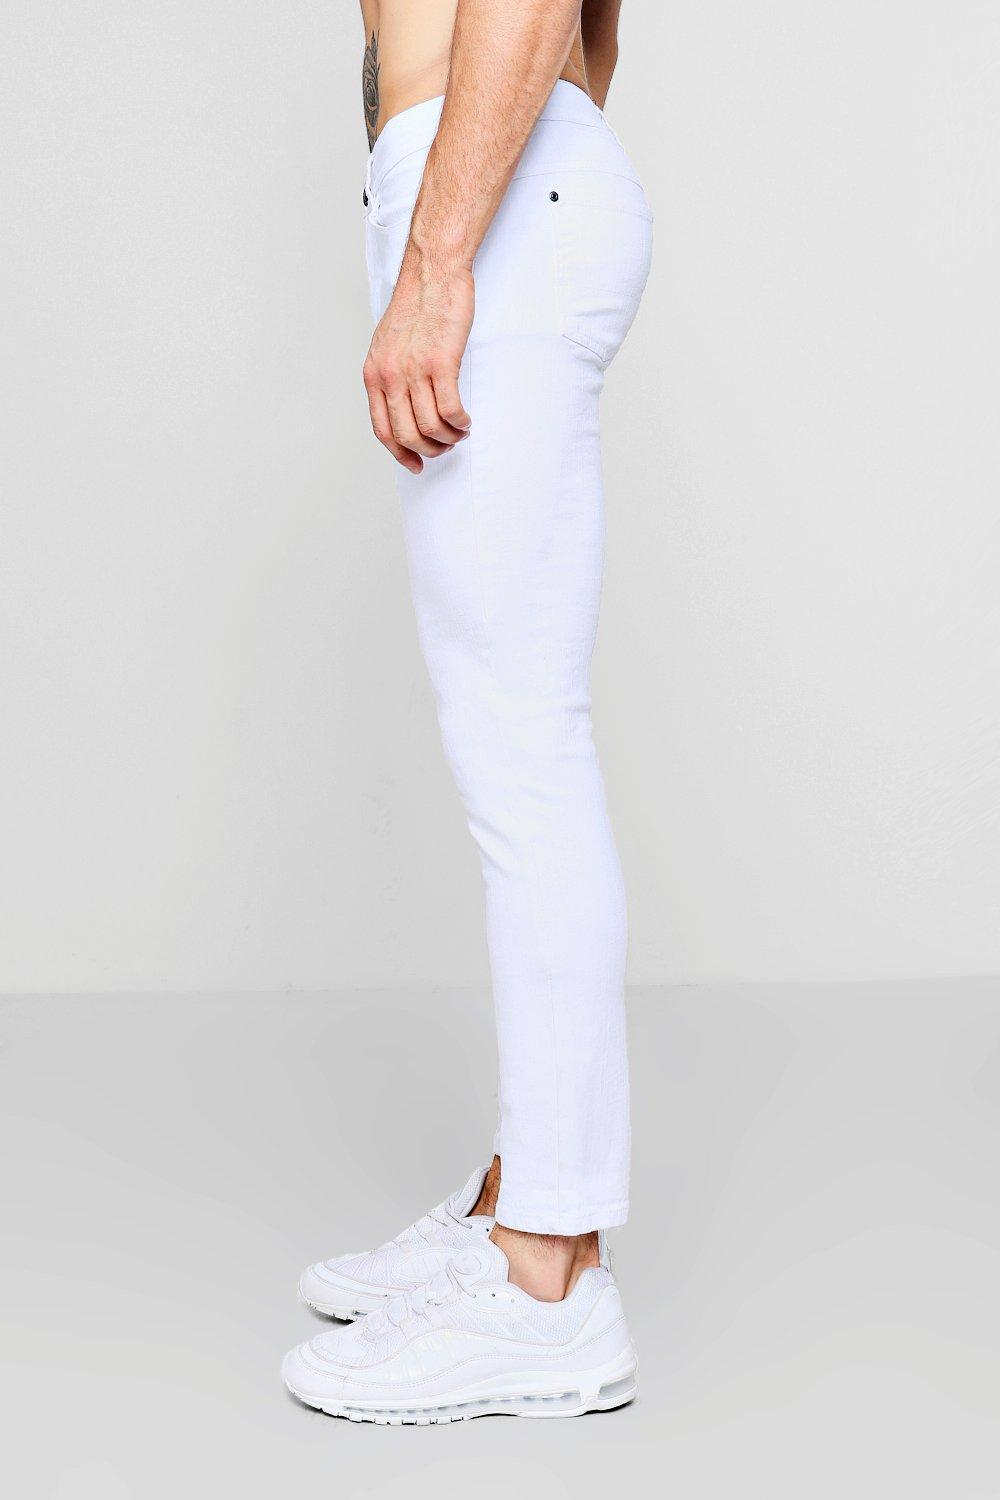 Skinny white Jeans Jeans White White Jeans Fit white Fit Fit Skinny white Skinny White Bxv7xAqwH5